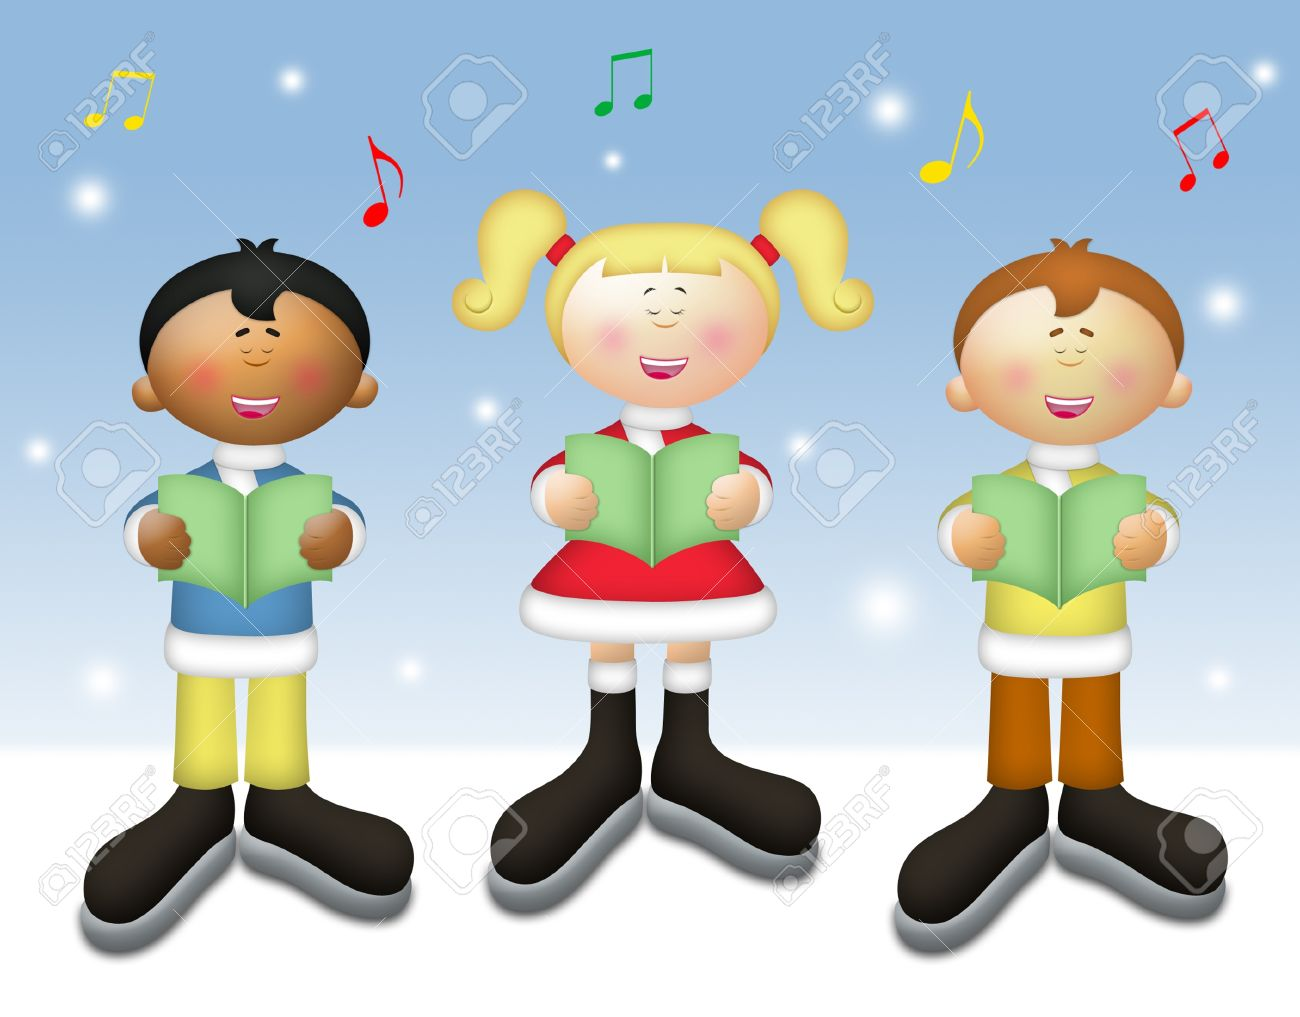 Three Kids Singing Christmas Carols In Winter Setting. Stock Photo ...